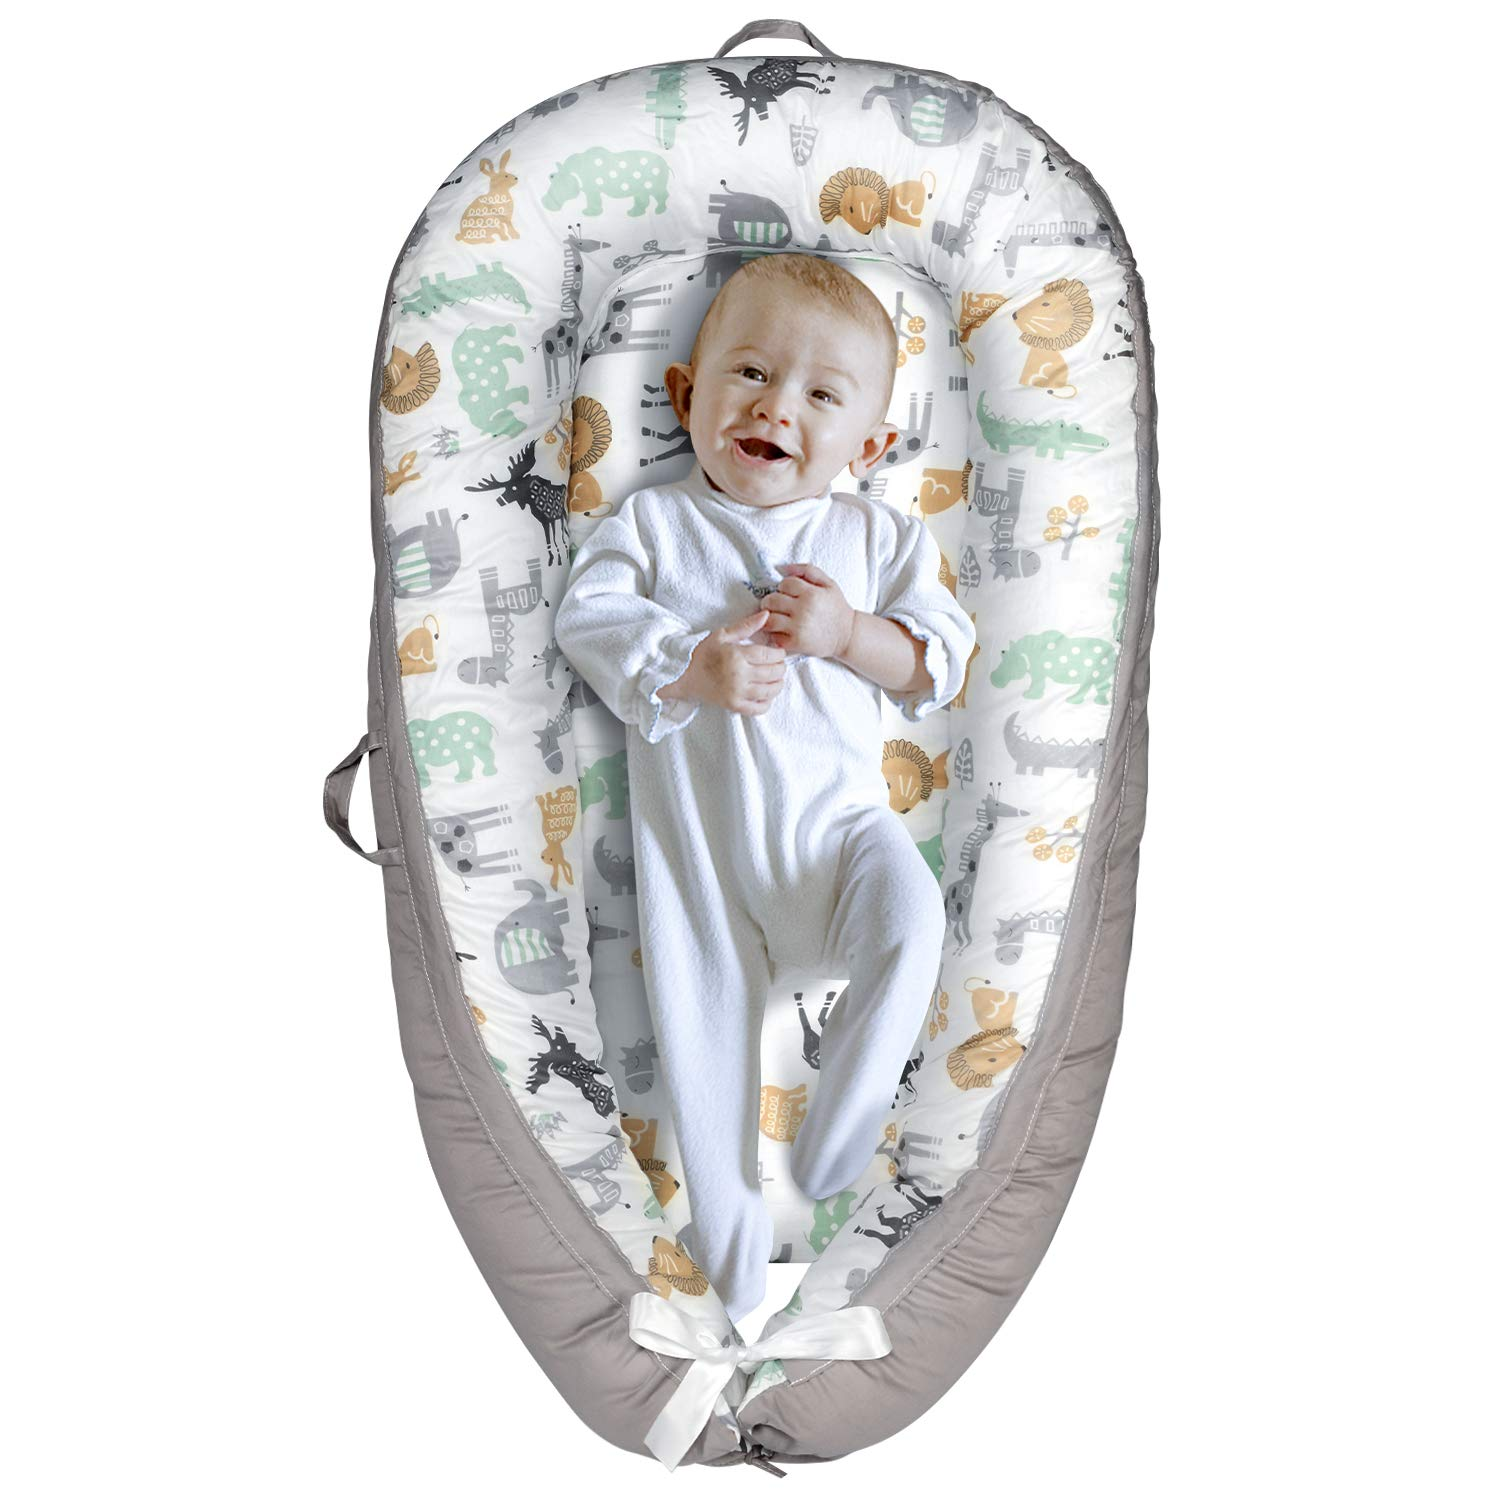 Yoocaa Under blast sales Baby Lounger Max 55% OFF Nest for - Breatha Cosleeping Portable